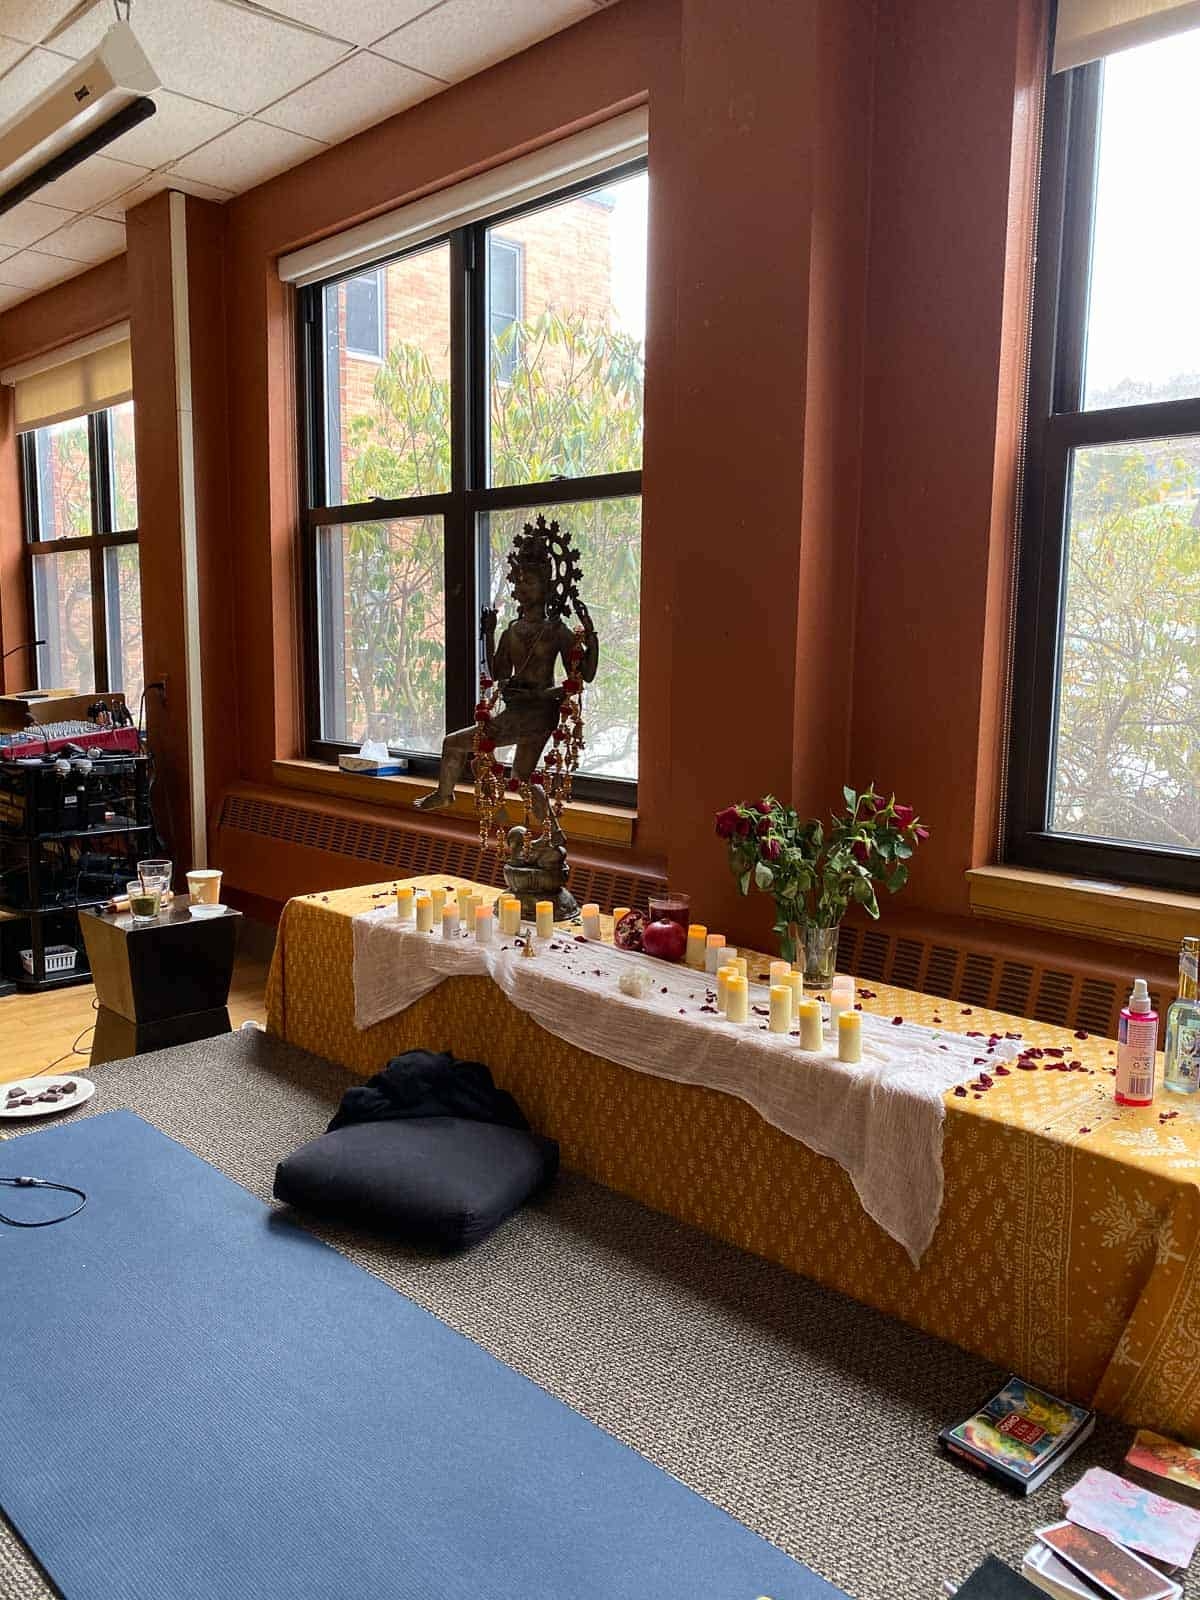 available candles during the morning program at Kripalu